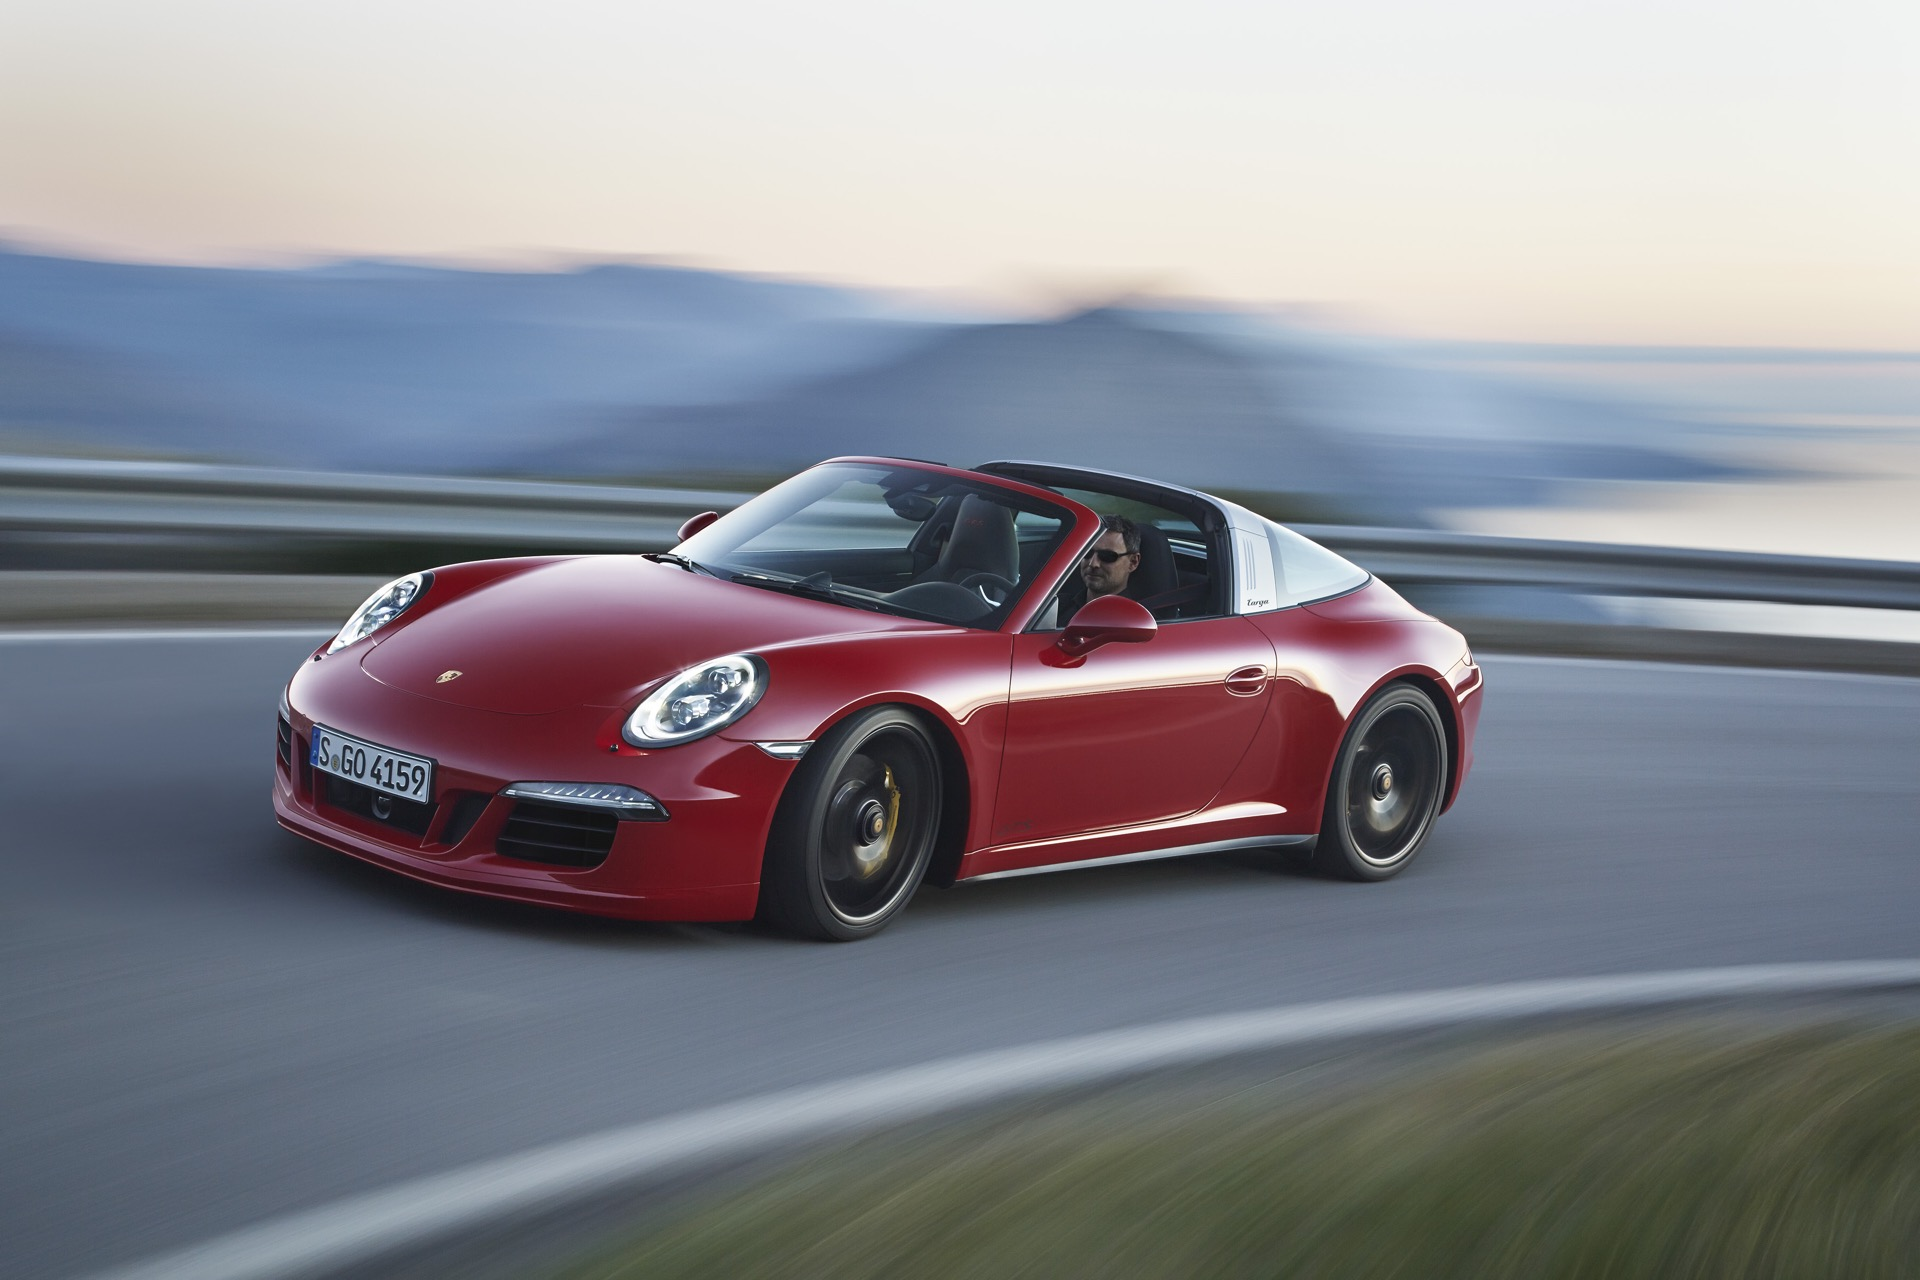 New And Used Porsche 911 Prices Photos Reviews Specs